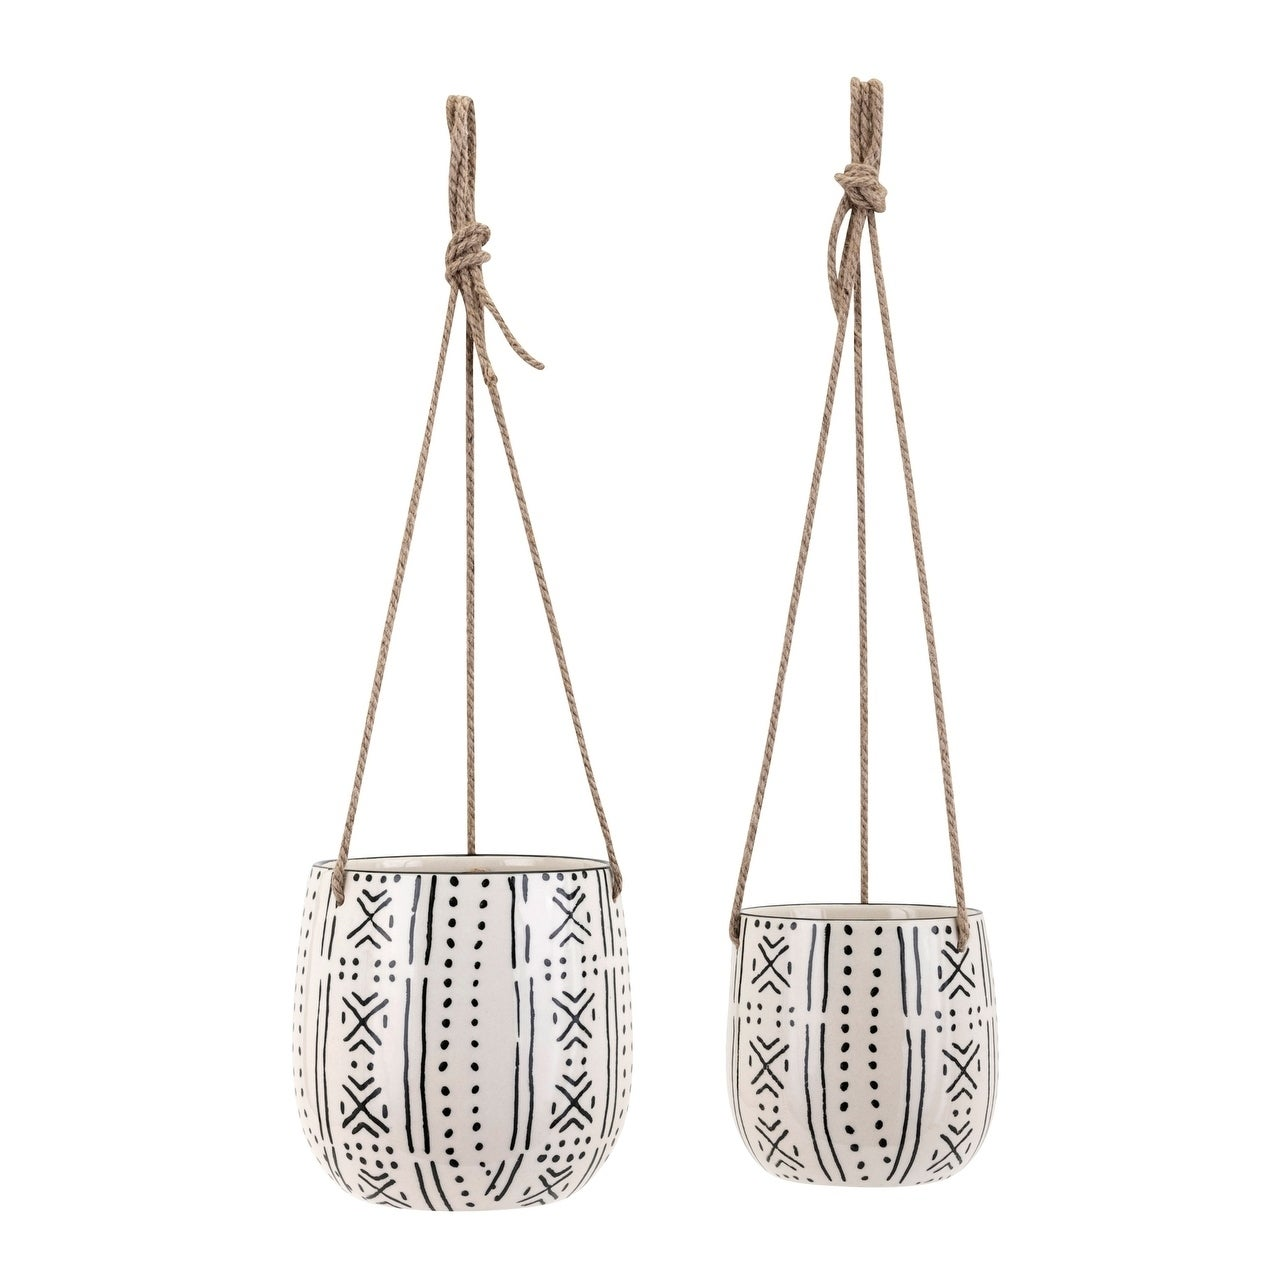 Round Ceramic Hanging Planters With Hemp Rope Handles Black And White Set Of 2 Overstock 26123565